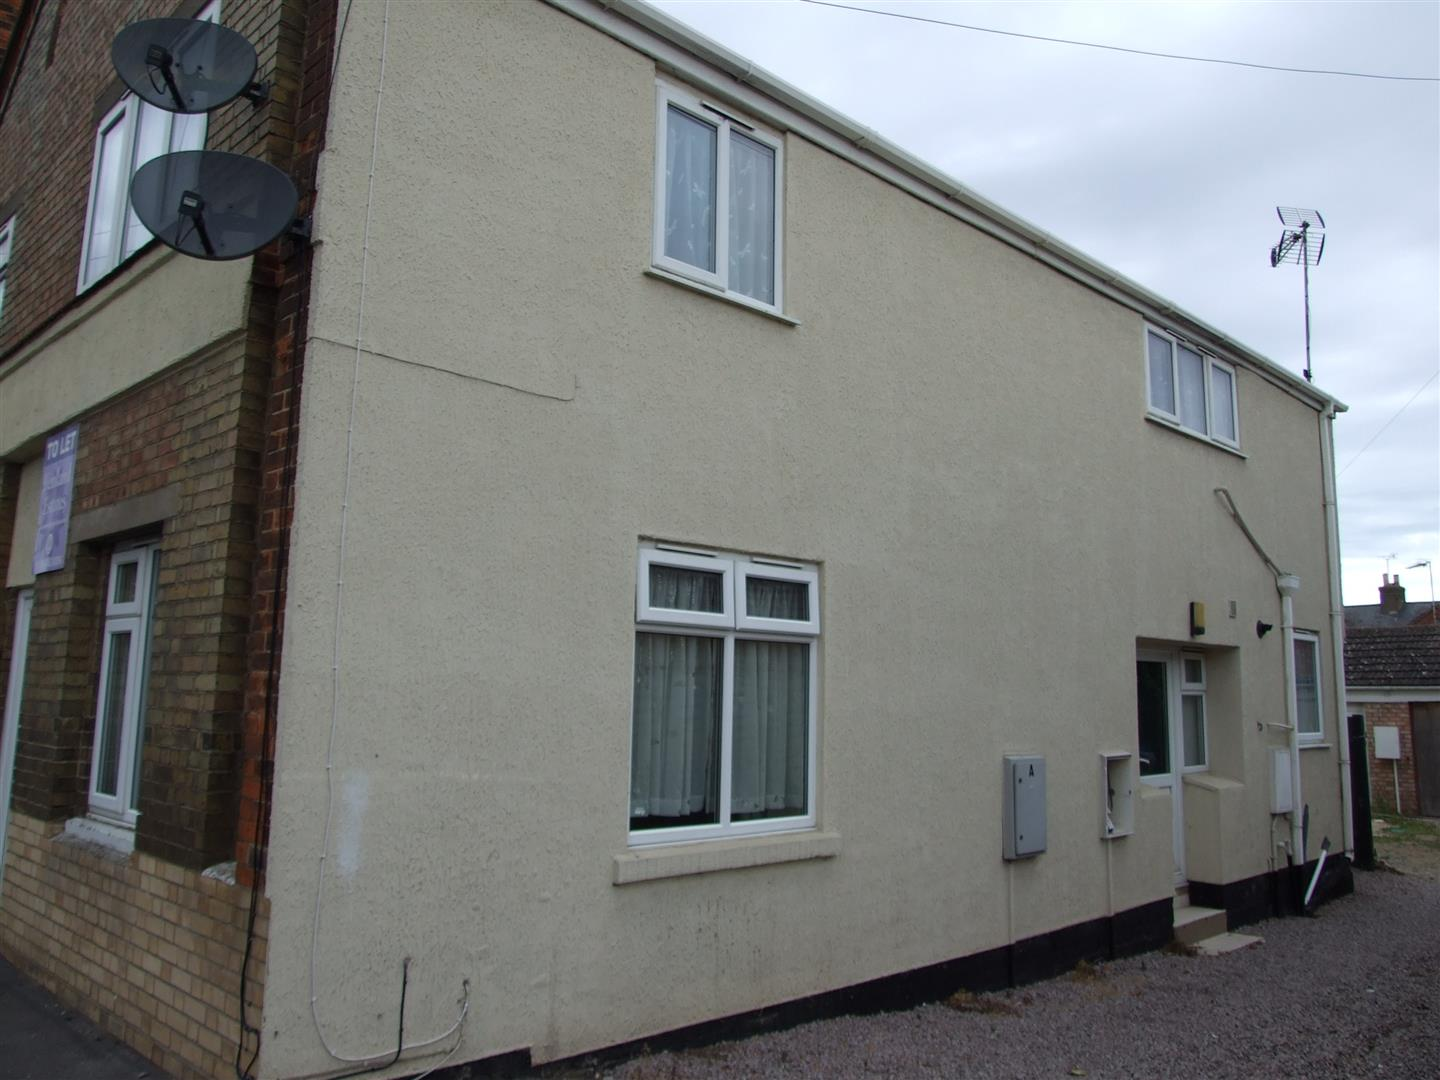 2 bed flat to rent in Sutton Bridge Spalding, PE12 9SF  - Property Image 1